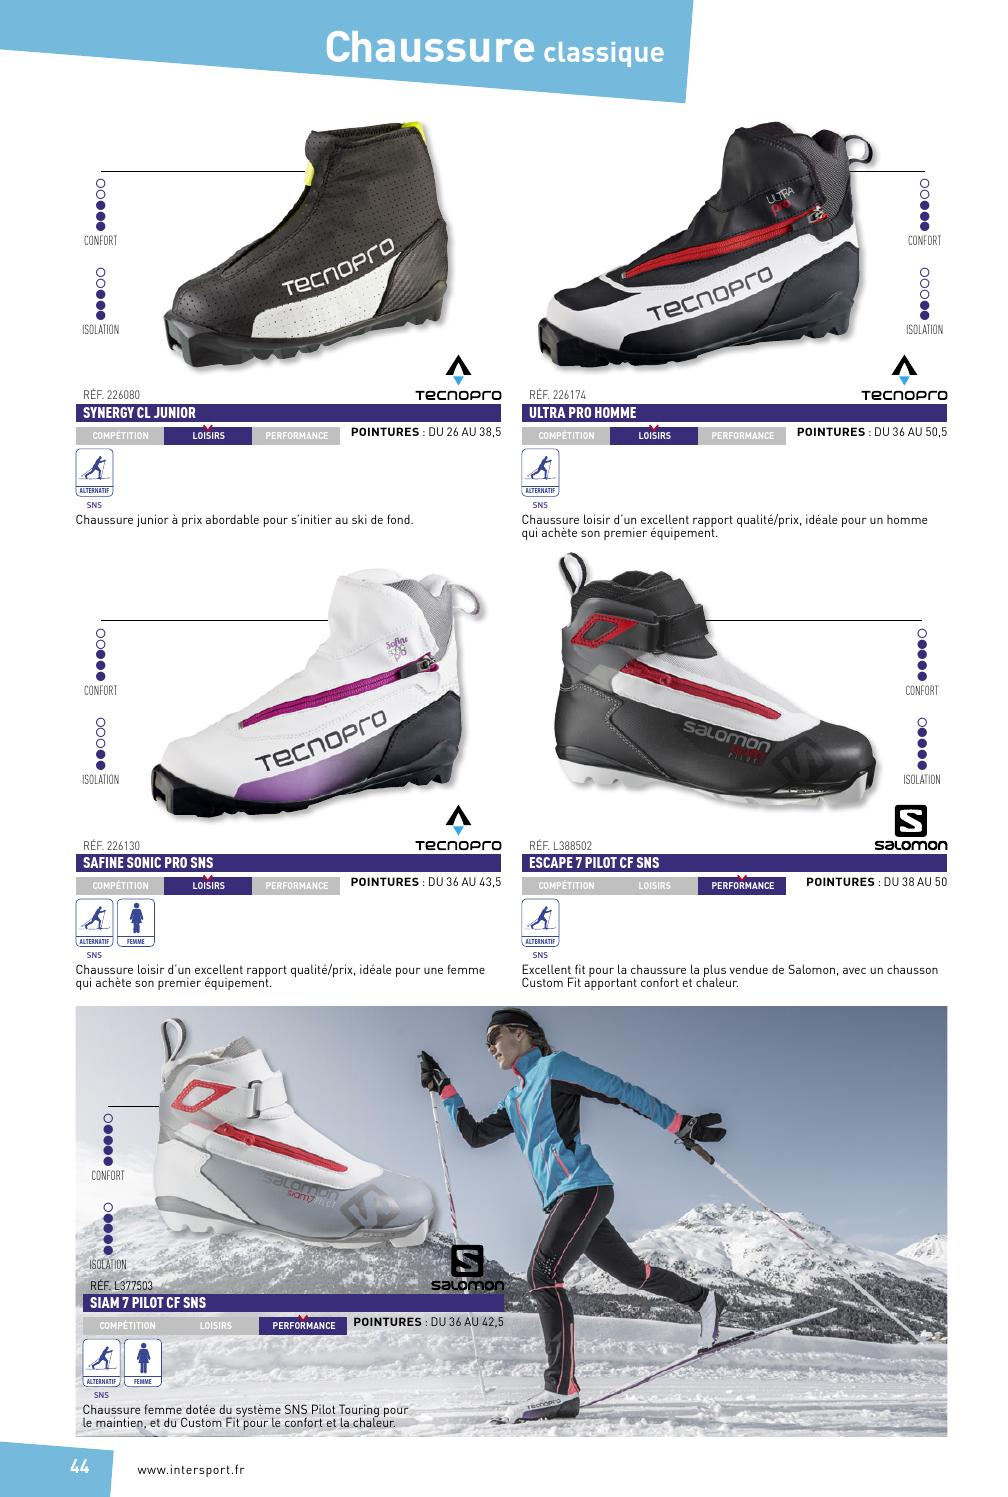 Issuu For Intersport 20152016 Neige France Awq5xwx0 Catalogue By zCwpdwq